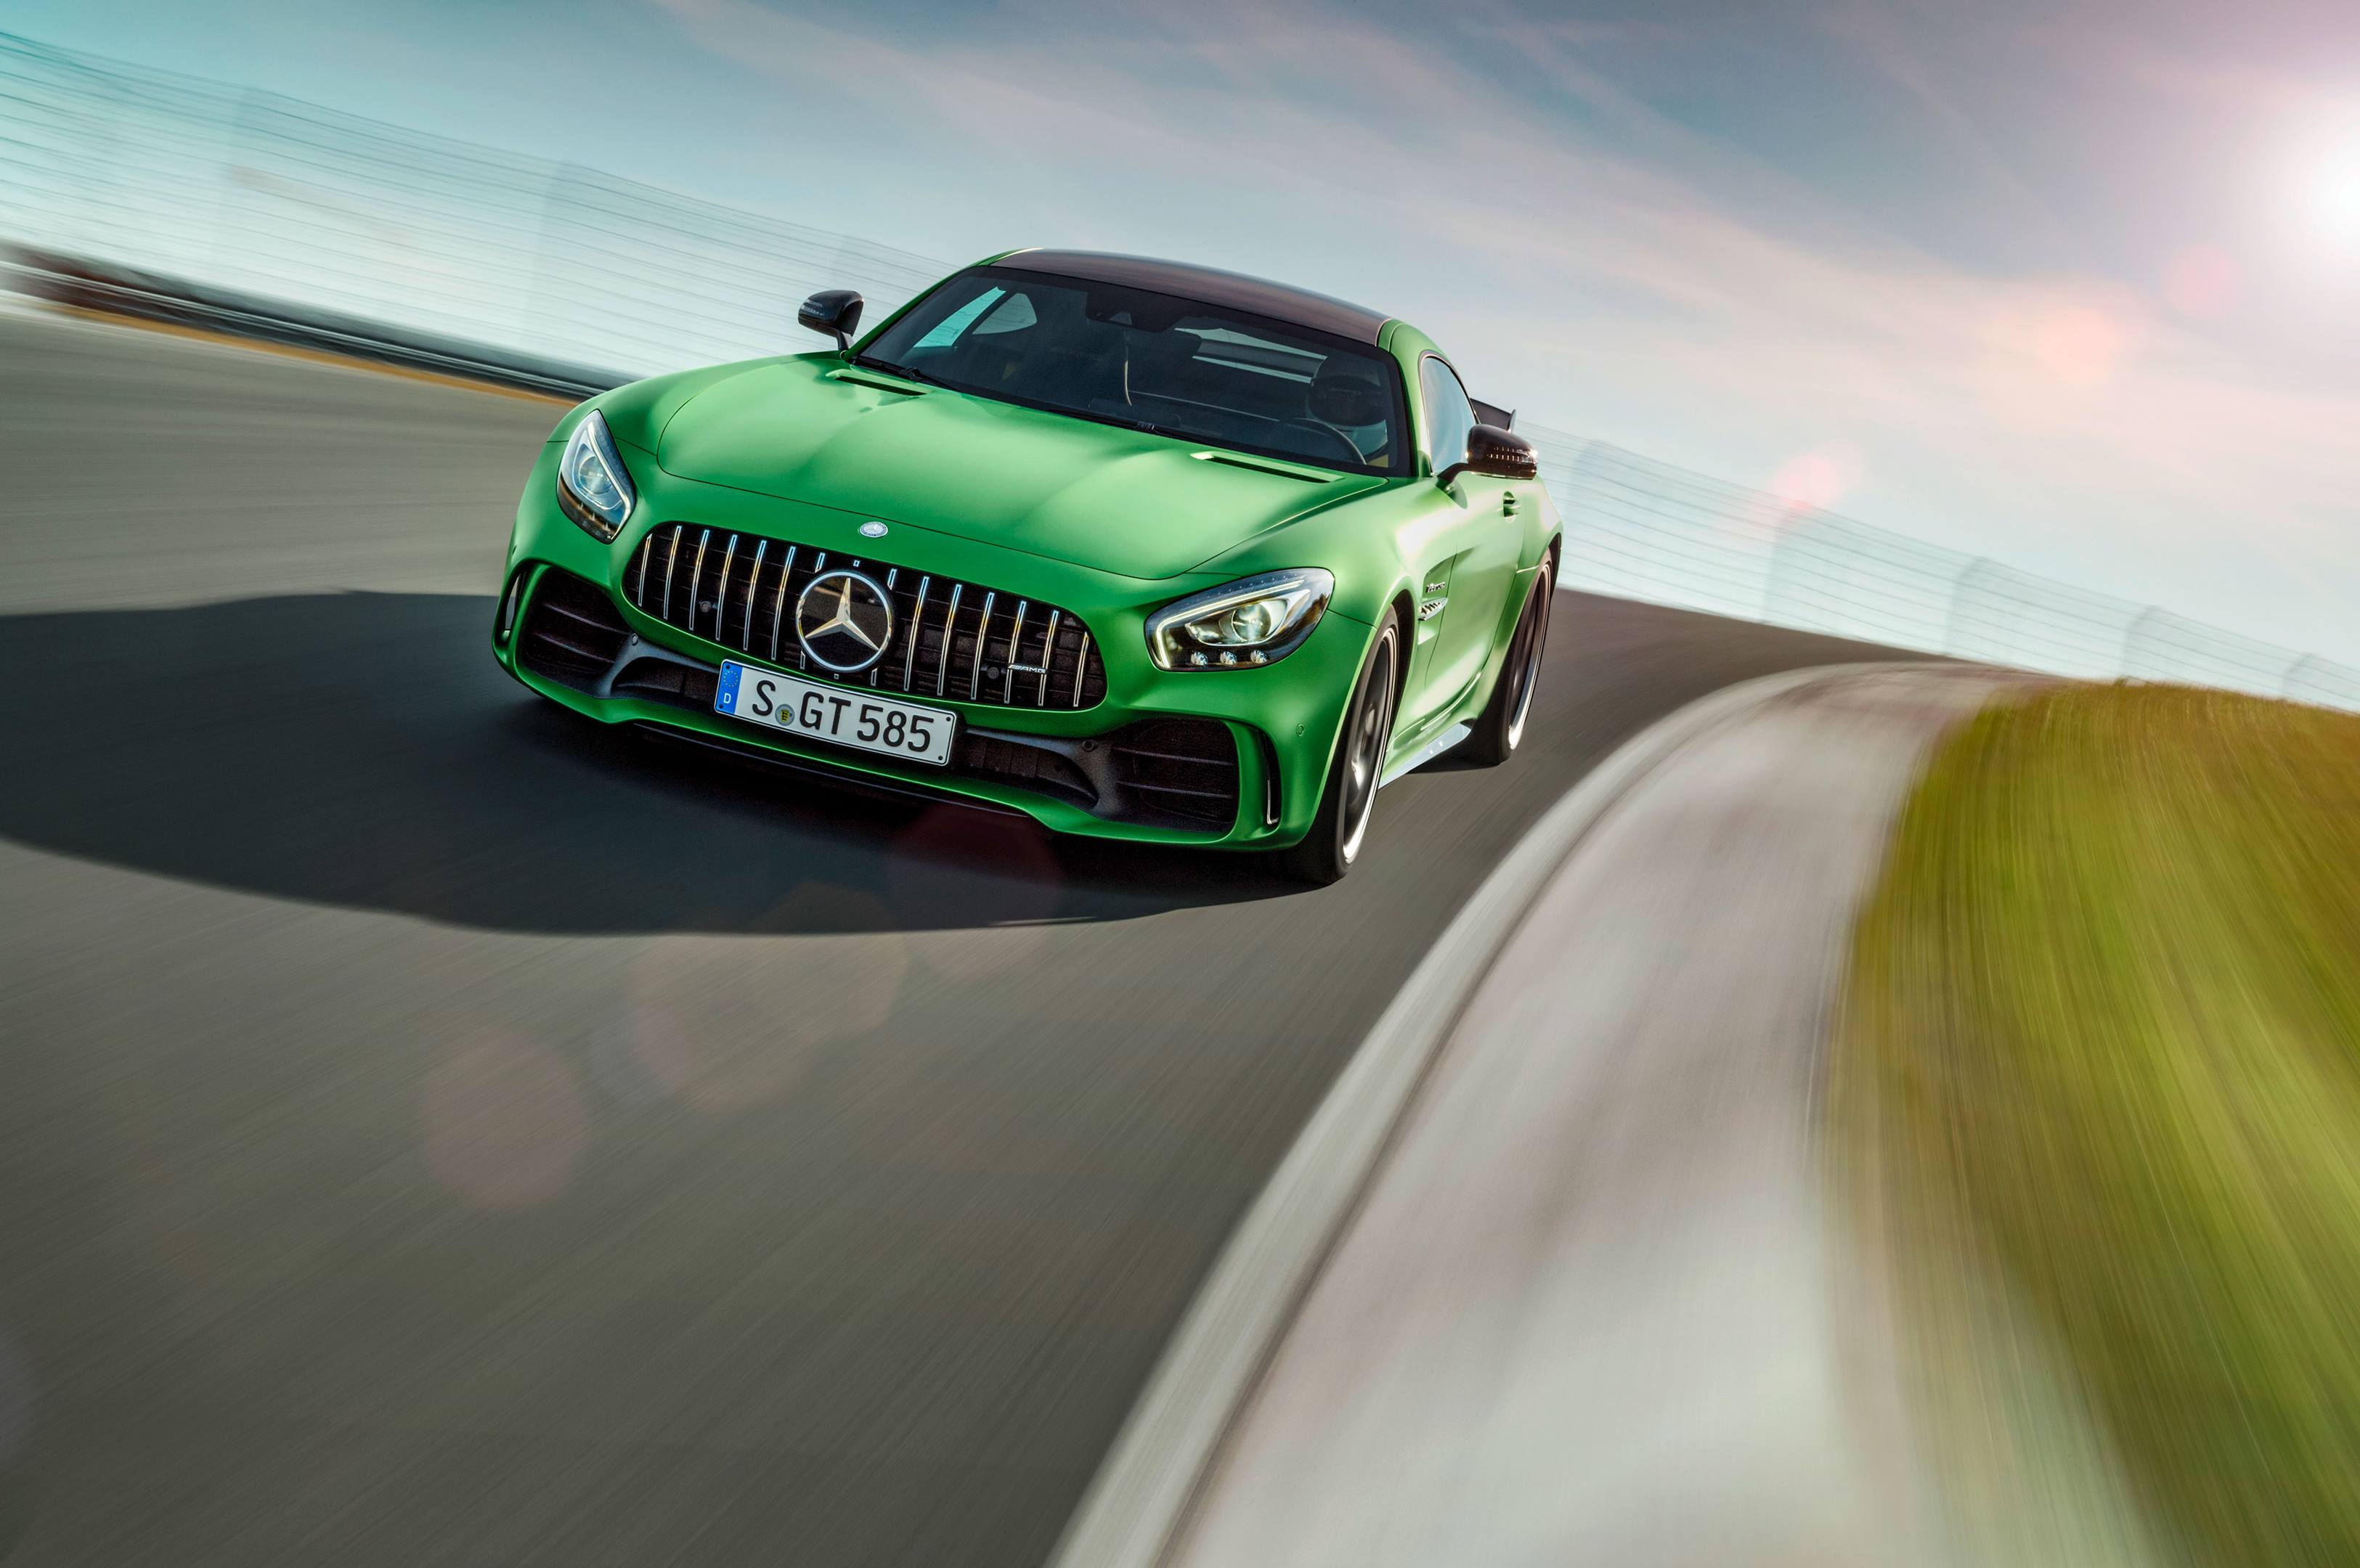 2018 Mercedes-AMG GT R on the track